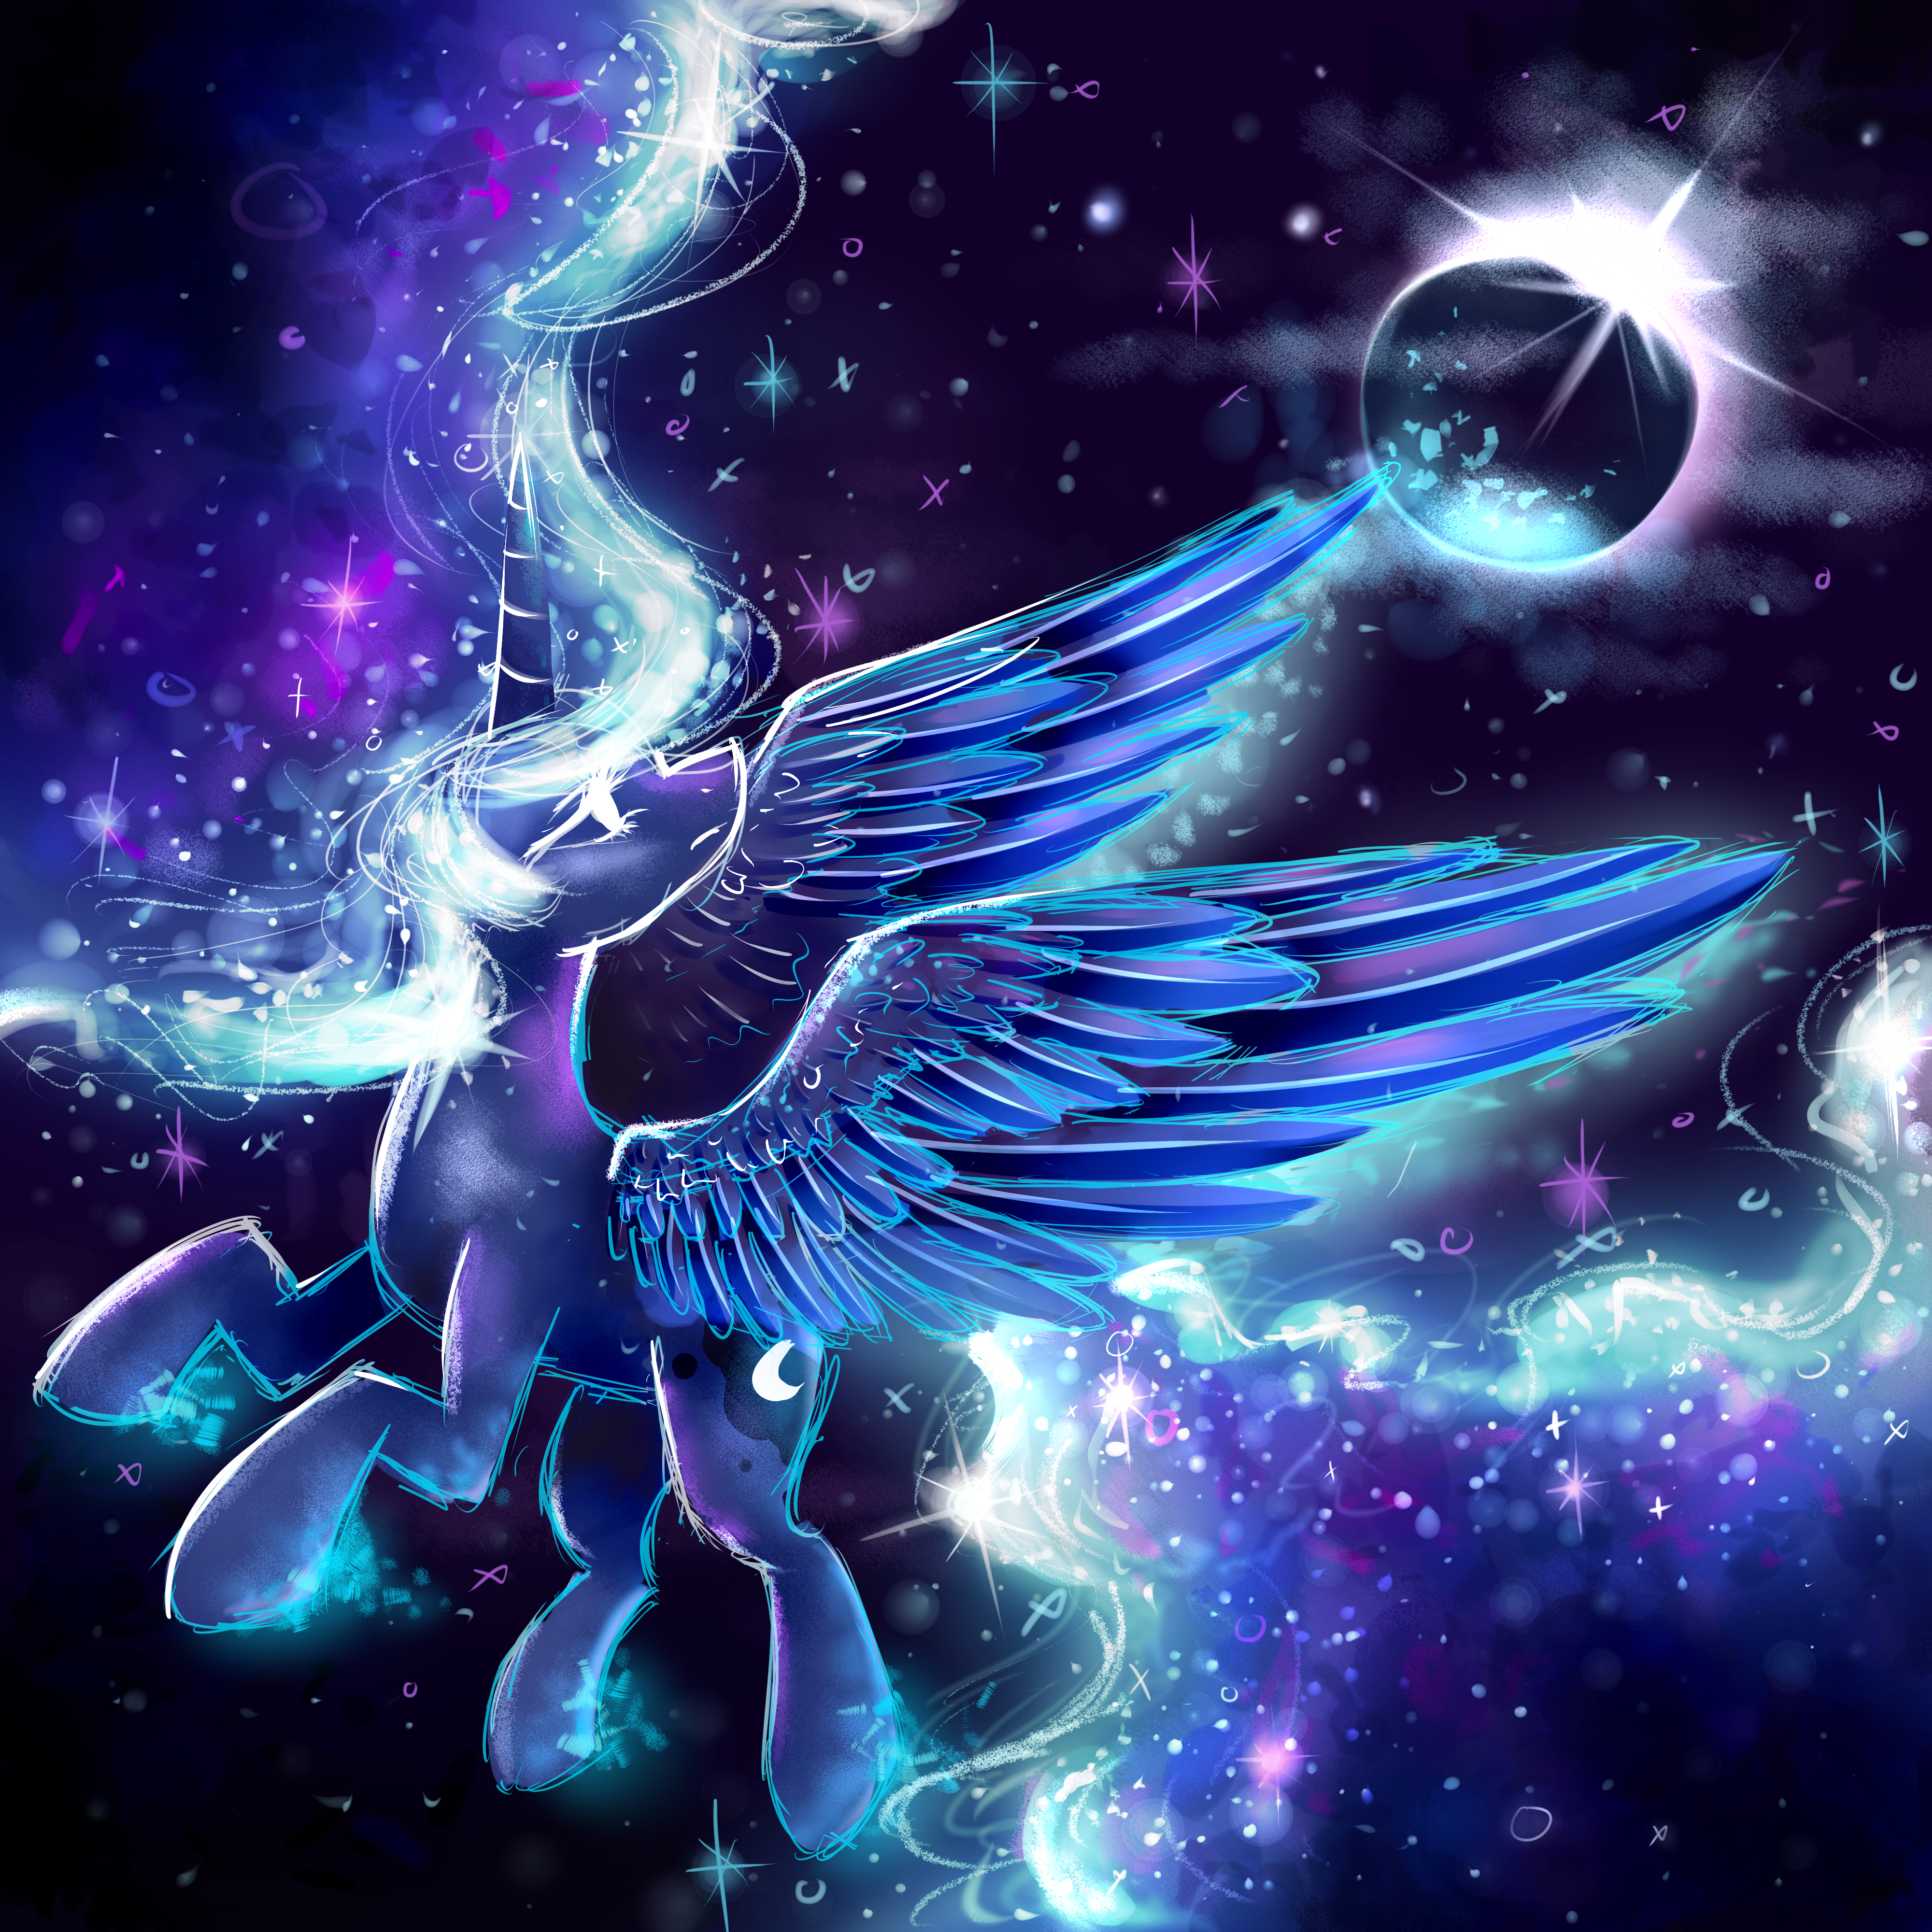 Eclipse By Mapony Dto